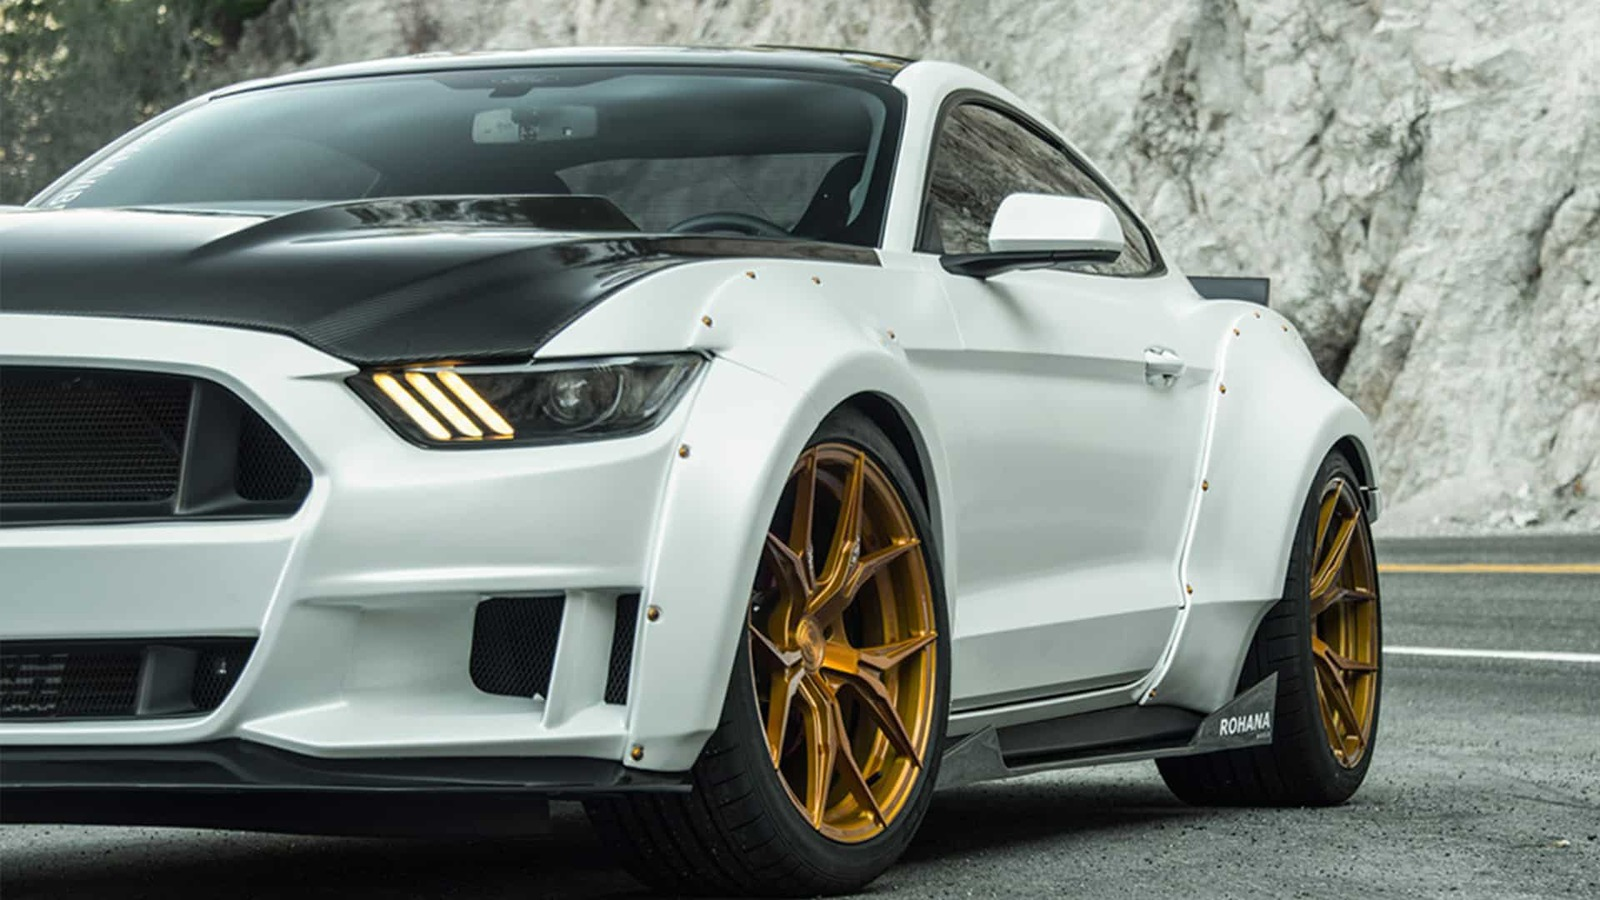 oxford-white-widebody-ford-mustang-gtpp-rohana-rfx5-gold-rotory-forged-concave-wheels.jpg